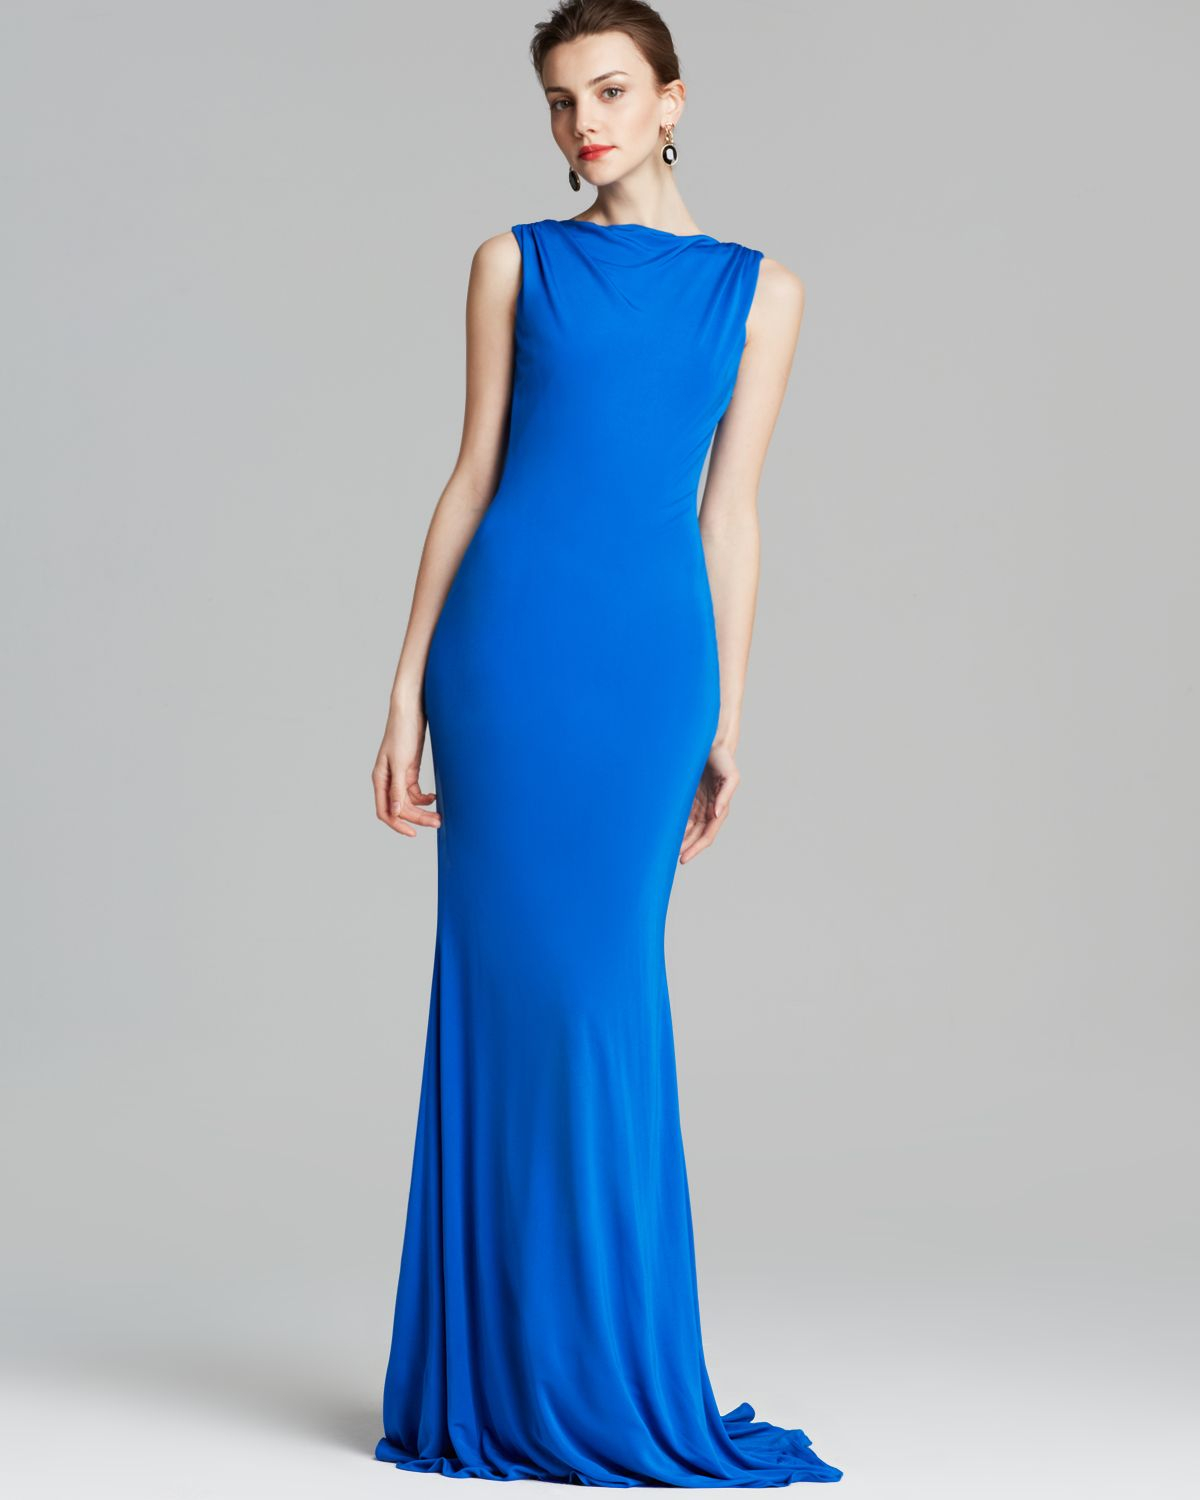 Badgley mischka gown bow back in blue cobalt lyst for Badgley mischka store nyc